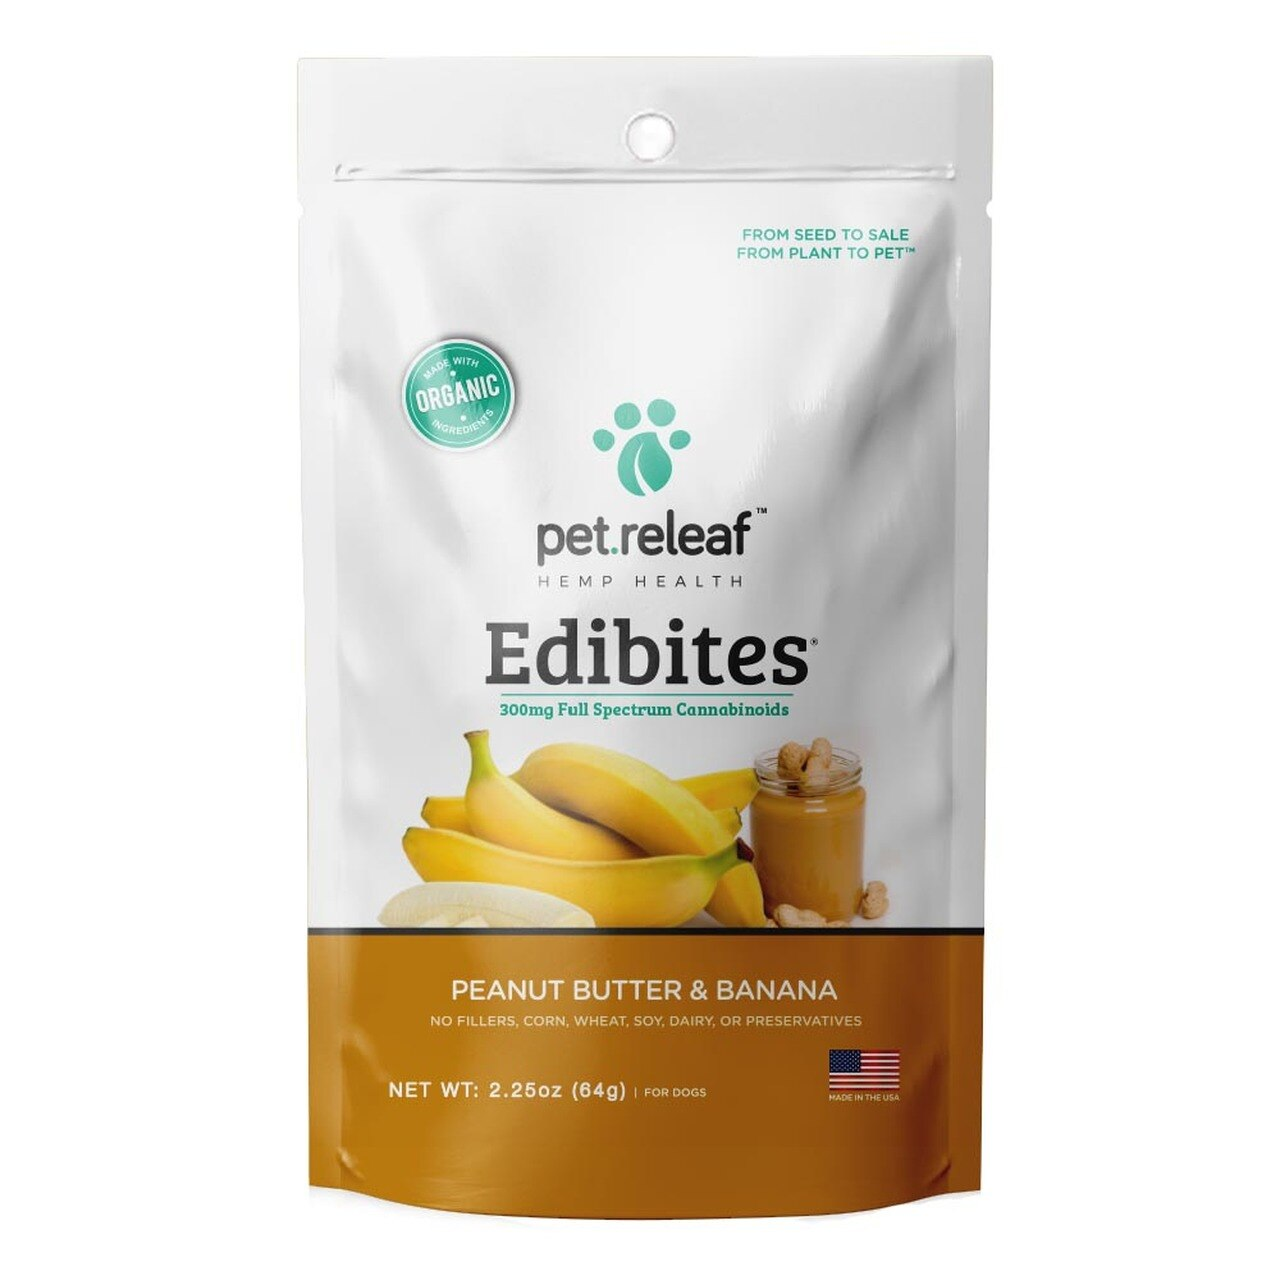 Pet Releaf Peanut Butter Banana and Oil Edibites for Dogs, 2.5-oz